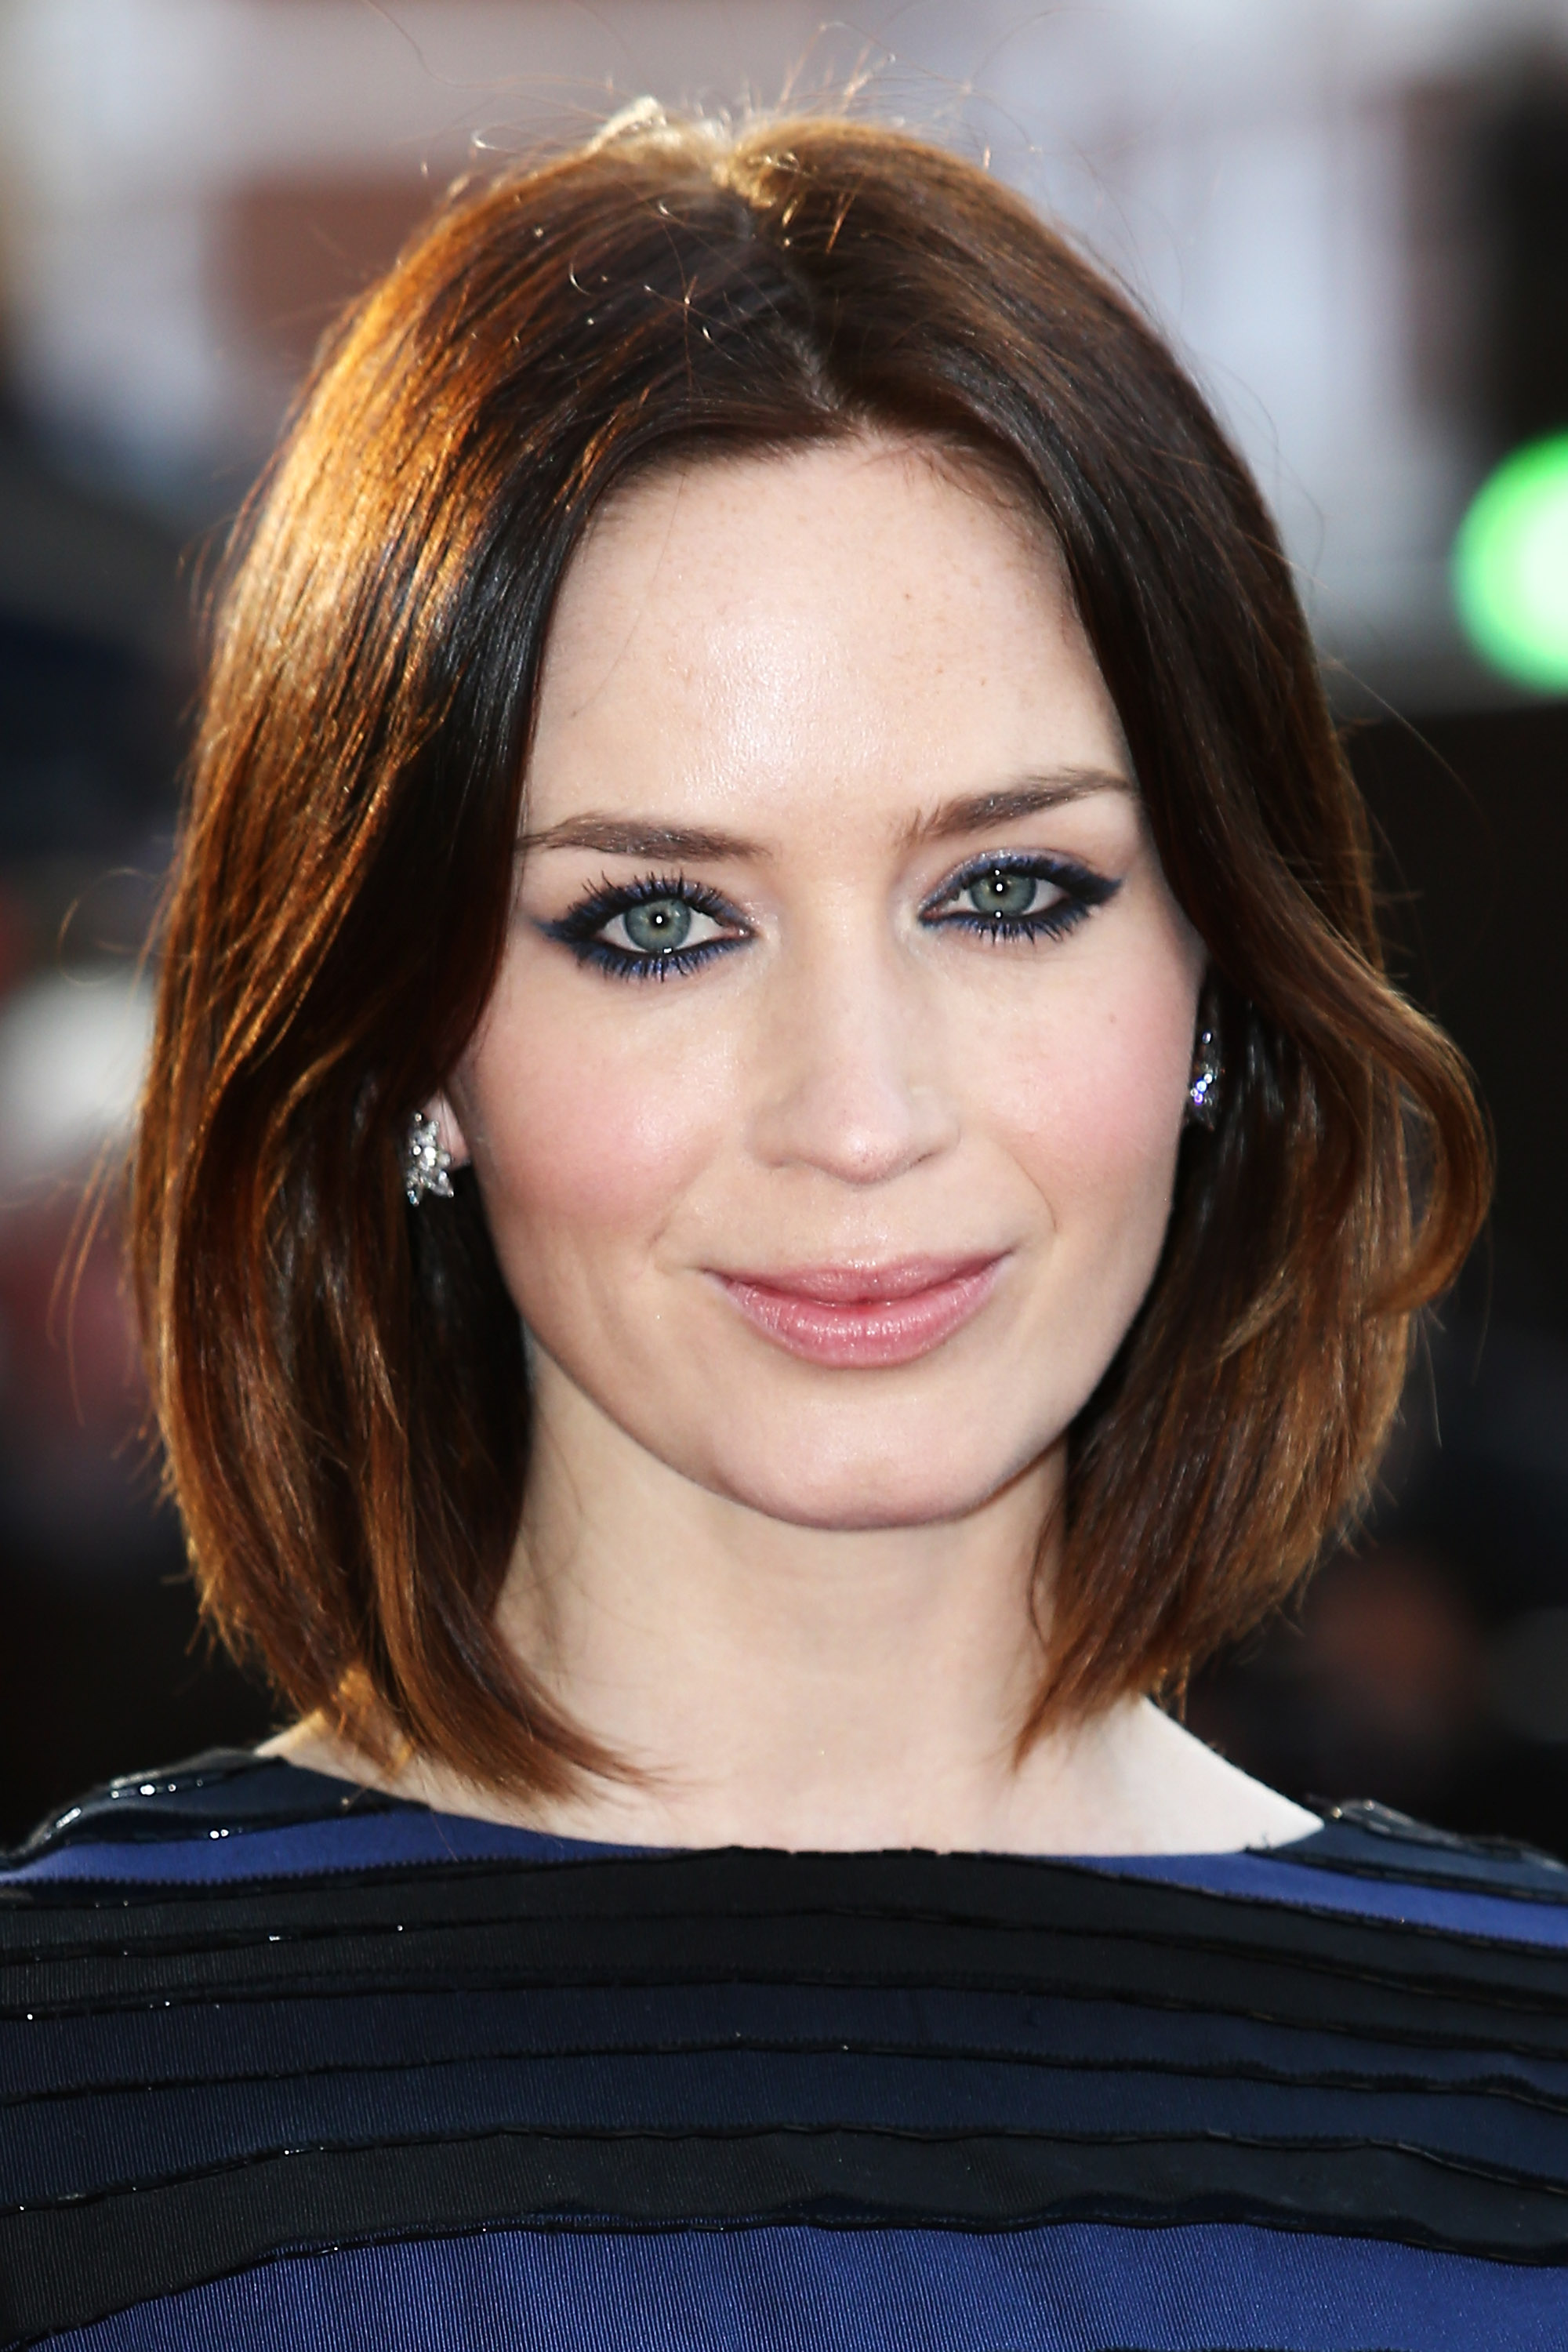 Incredible 17 Lob Hairstyles On Celebrities In 2016 Best Long Bob Haircut Ideas Short Hairstyles For Black Women Fulllsitofus